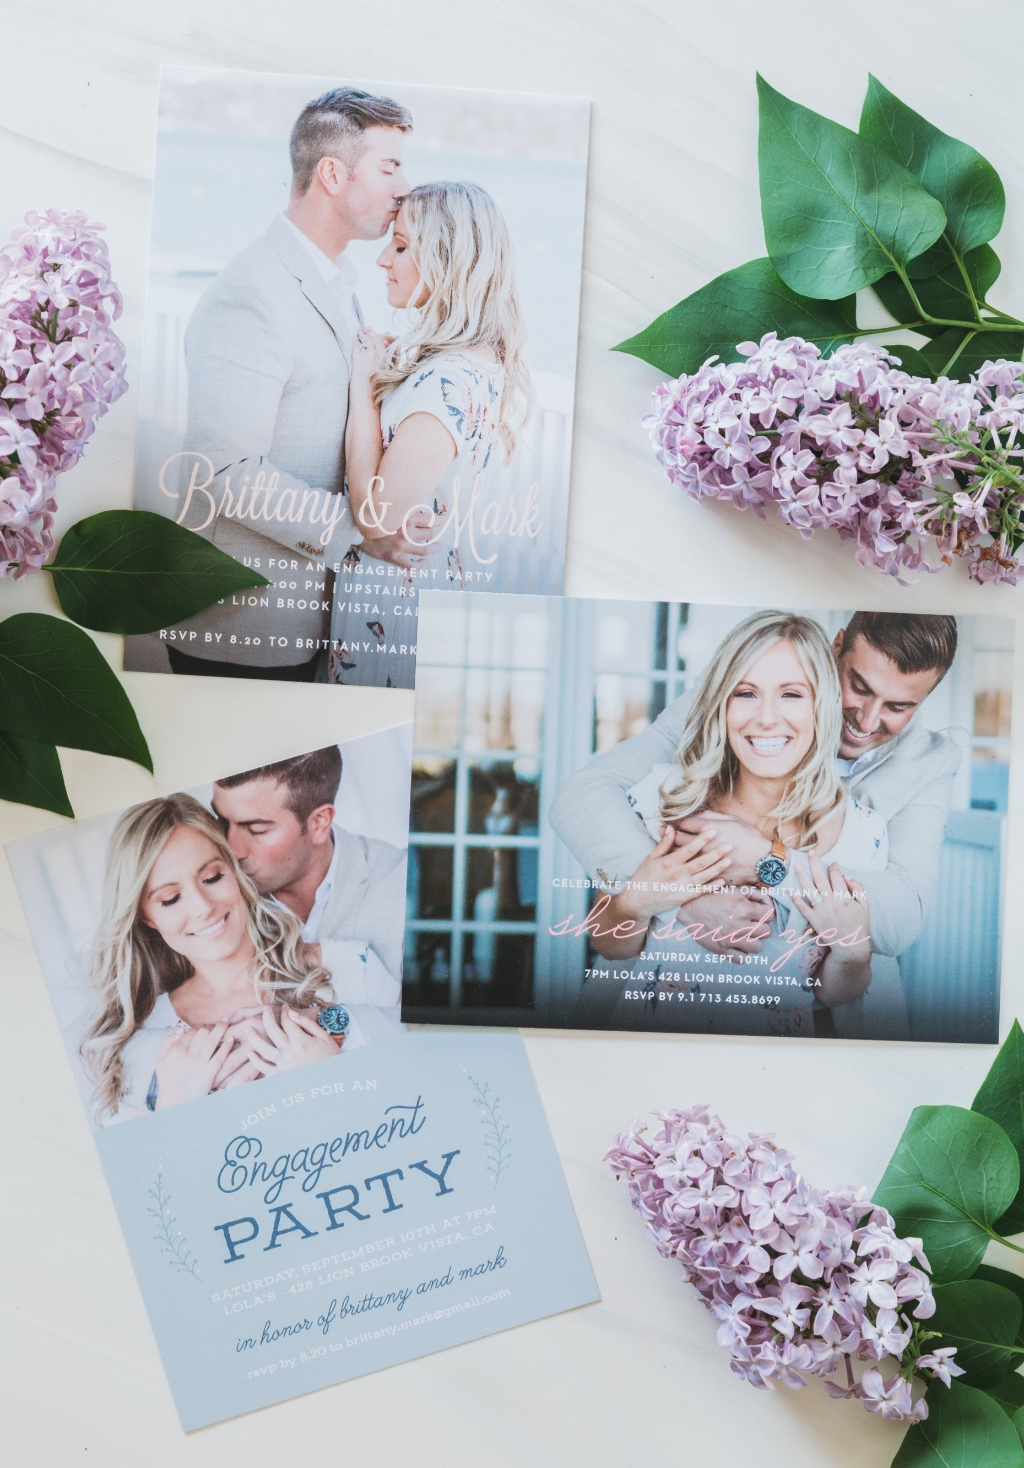 Our new engagement party invitation line is here and it's too cute! Choose a photo engagement to show off that bling and pop the bubbly